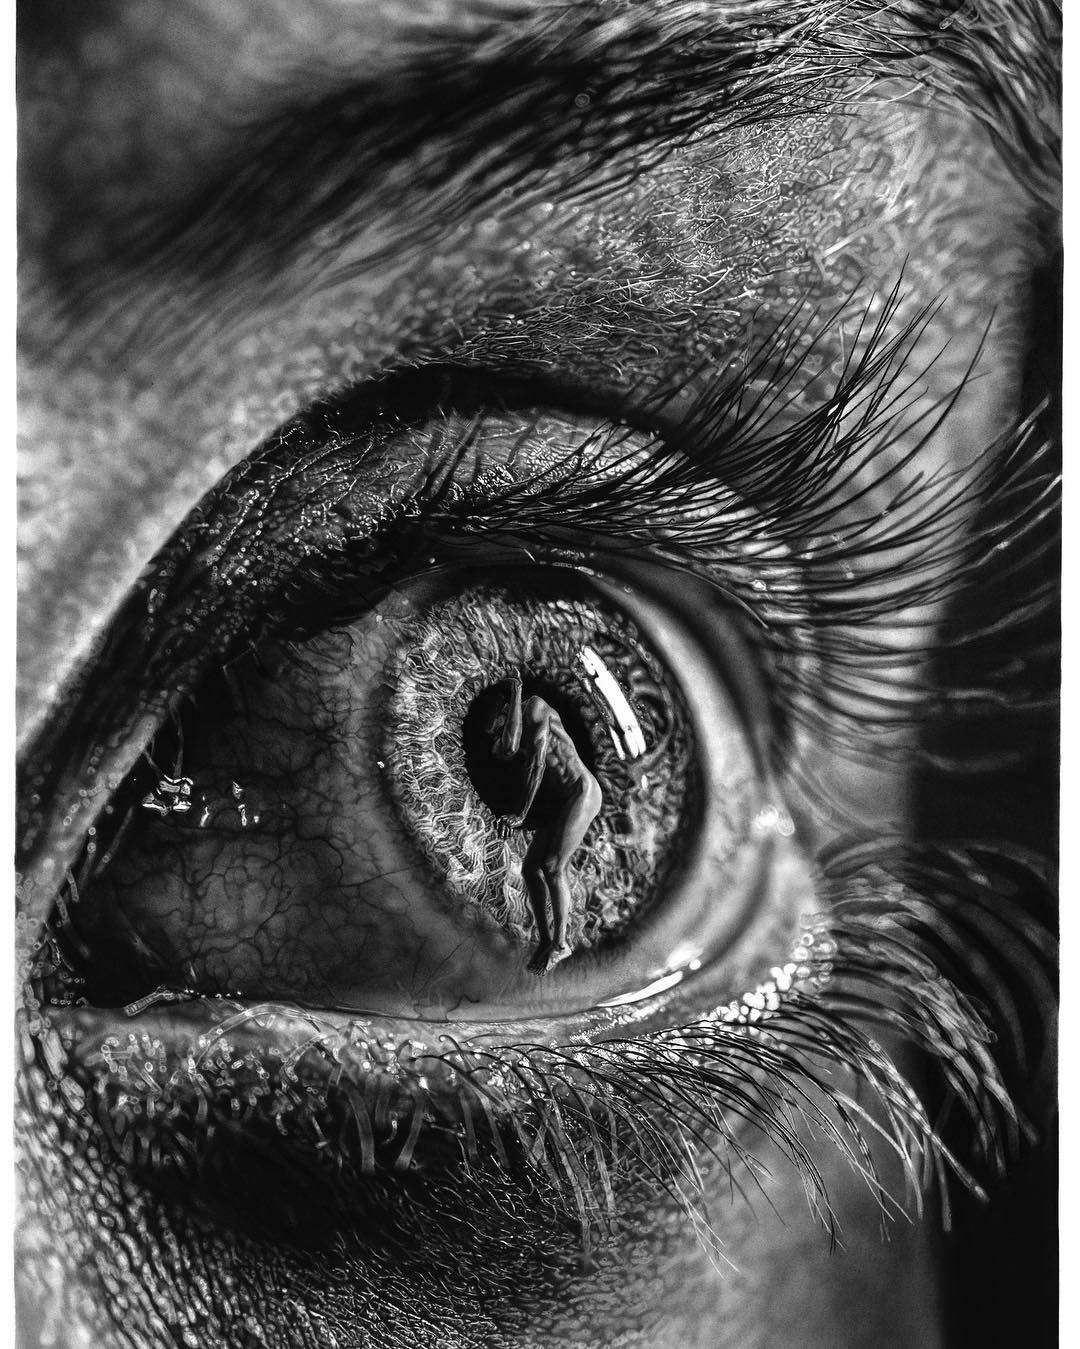 Artists giant pencil drawings blur the line between hyperrealism and surrealism